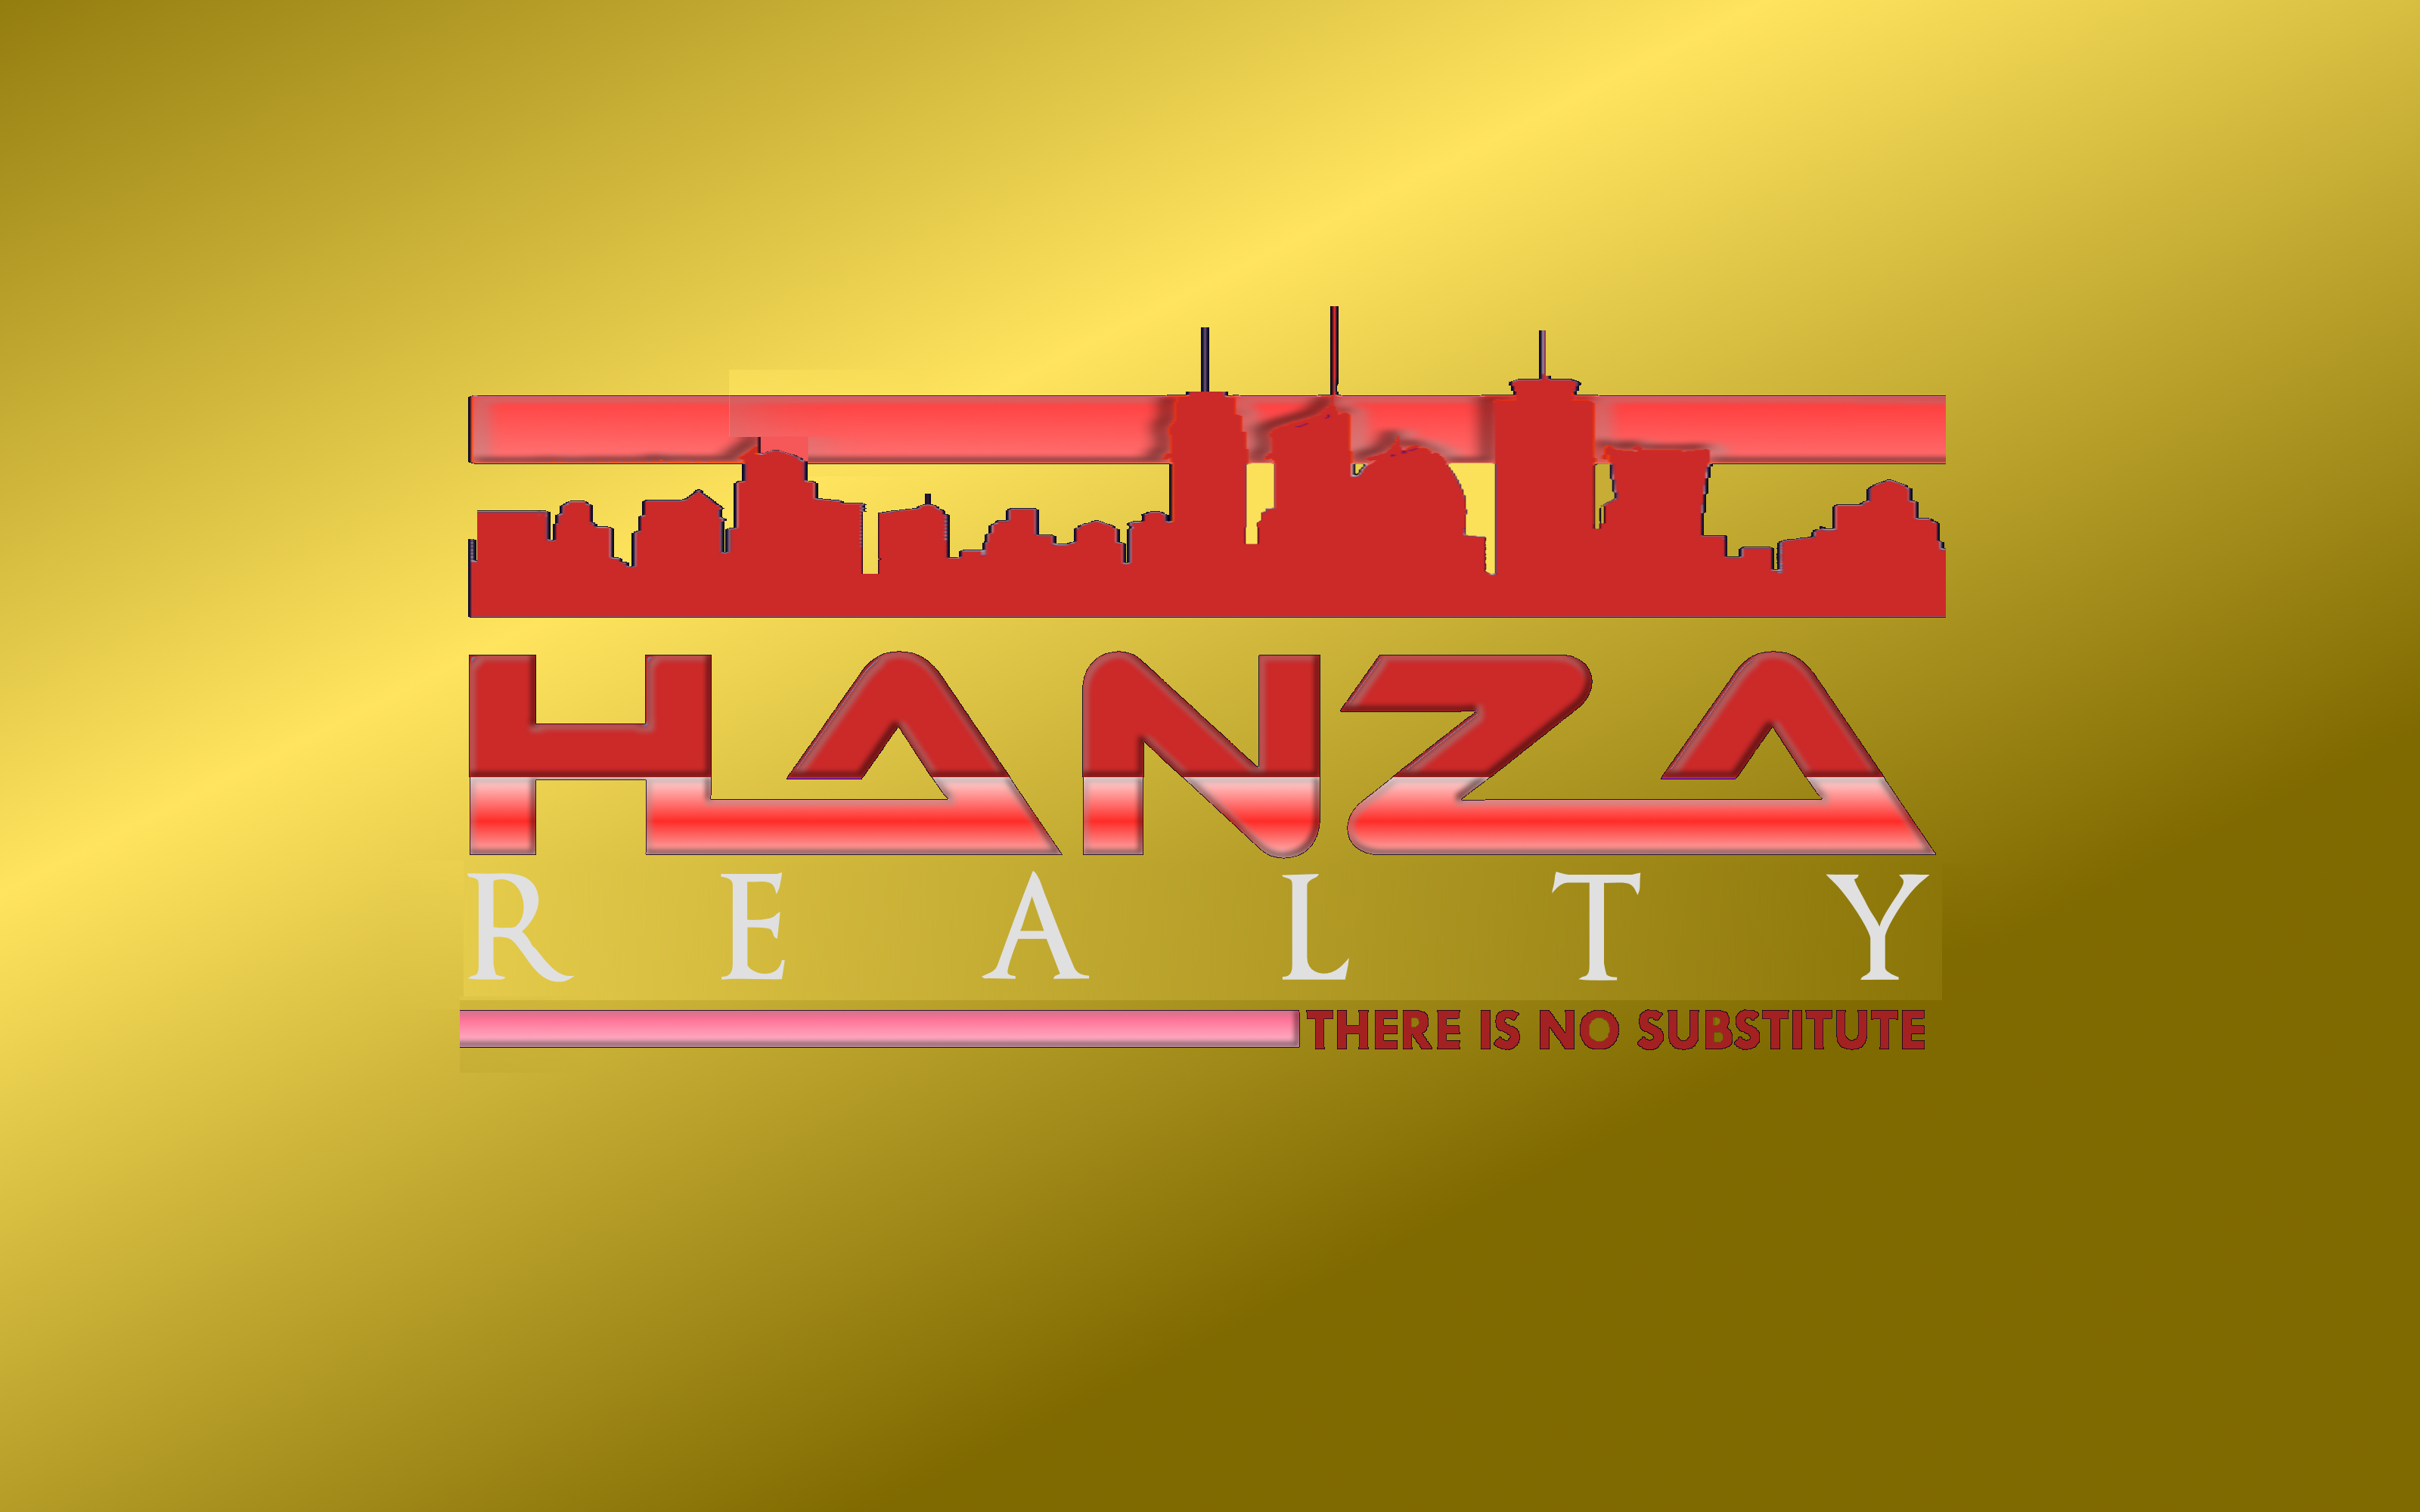 Logo Design by Roberto Bassi - Entry No. 466 in the Logo Design Contest Logo Design for Hanza Realty.